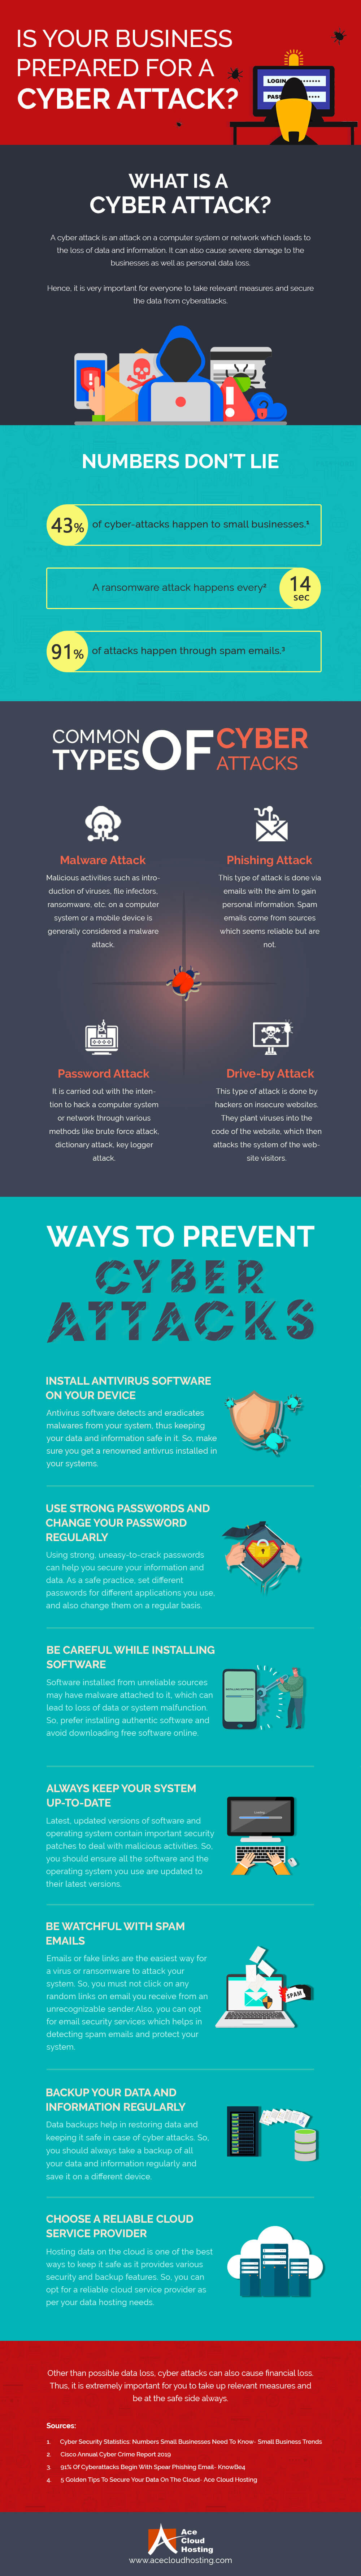 [Infographic] Is Your Business Prepared For A Cyber Attack?